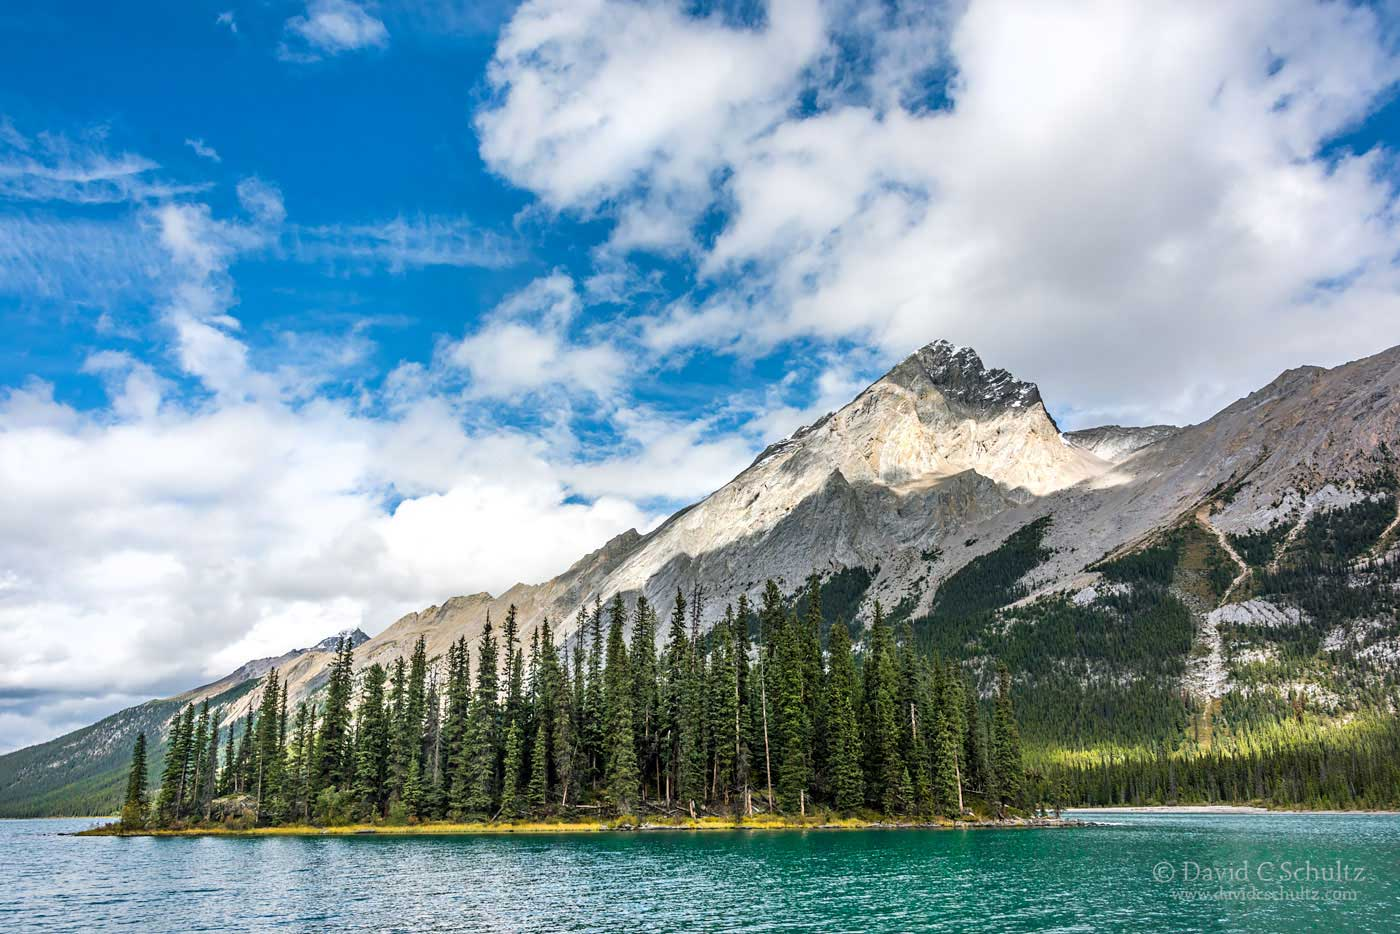 Maligne Lake, Jasper National Park, Canada - Image #125-594